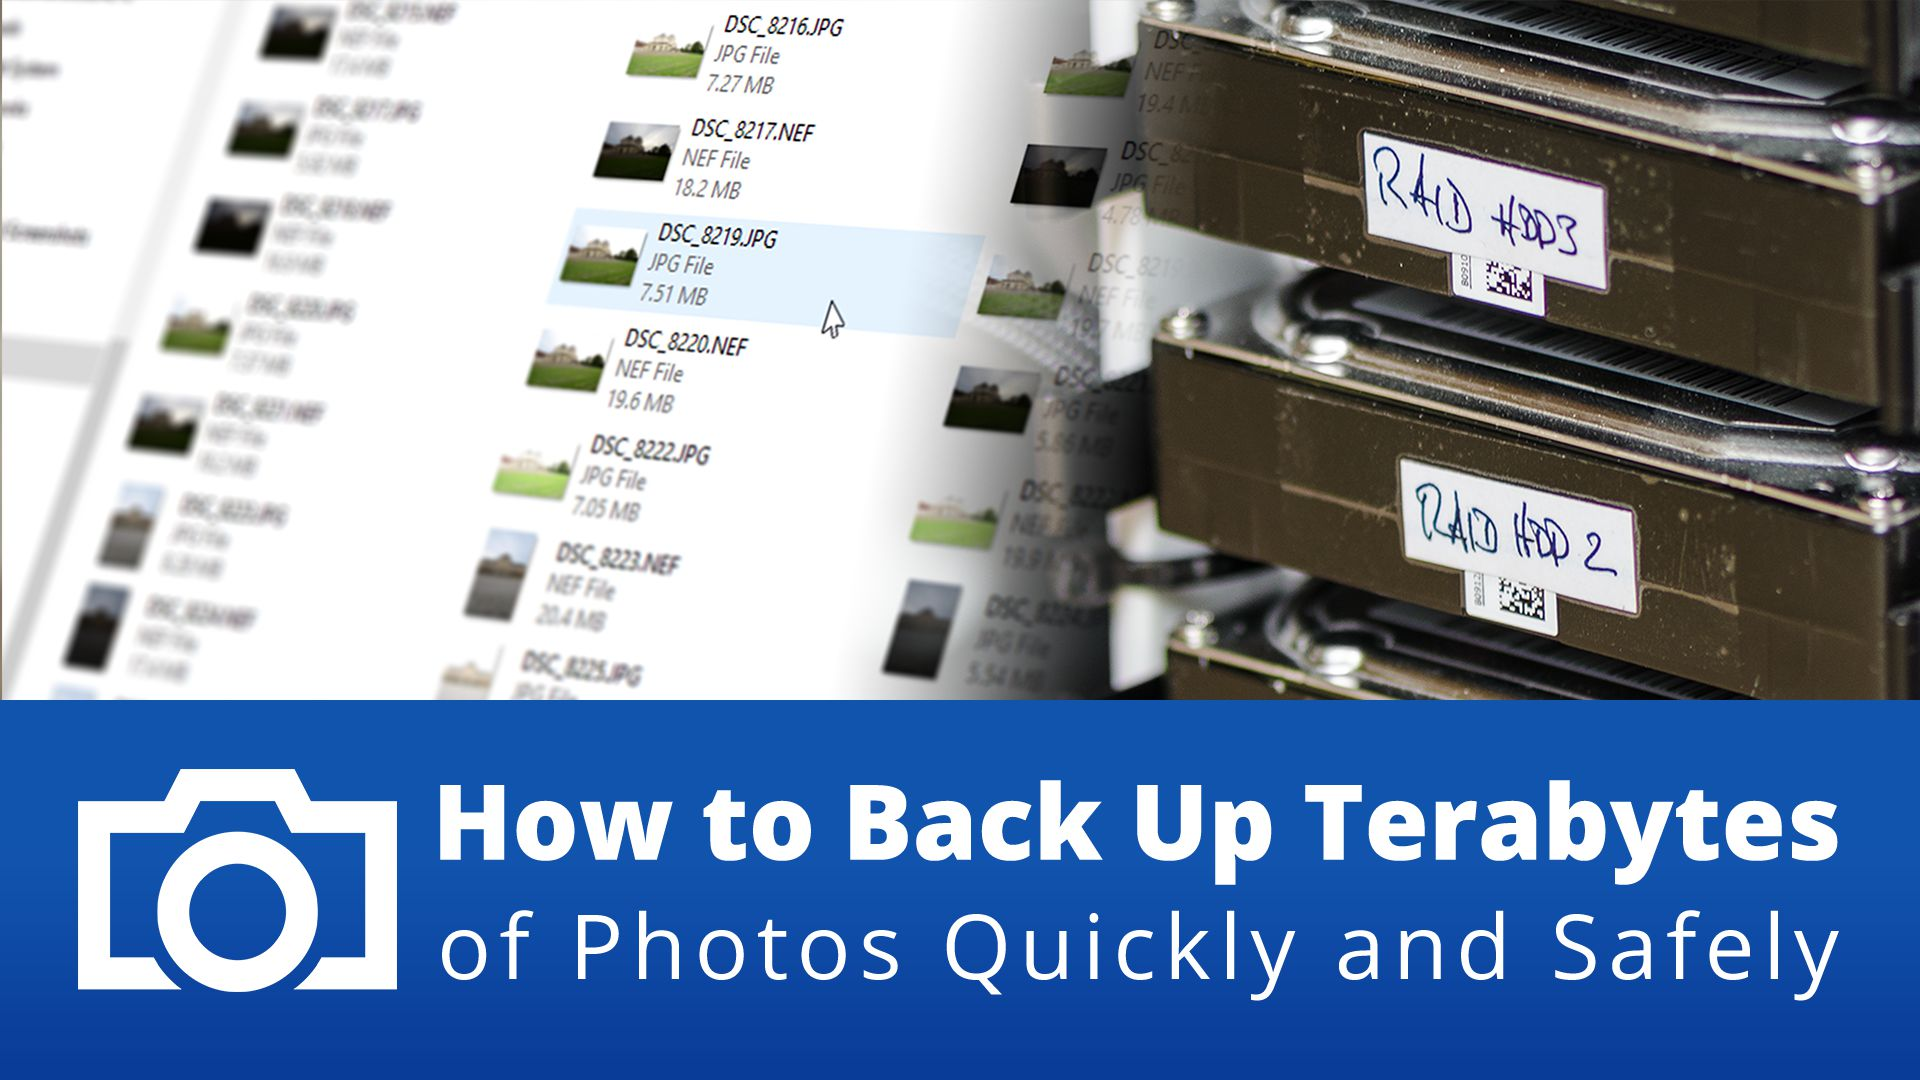 How to Back Up Terabytes of Photos Quickly and Safely